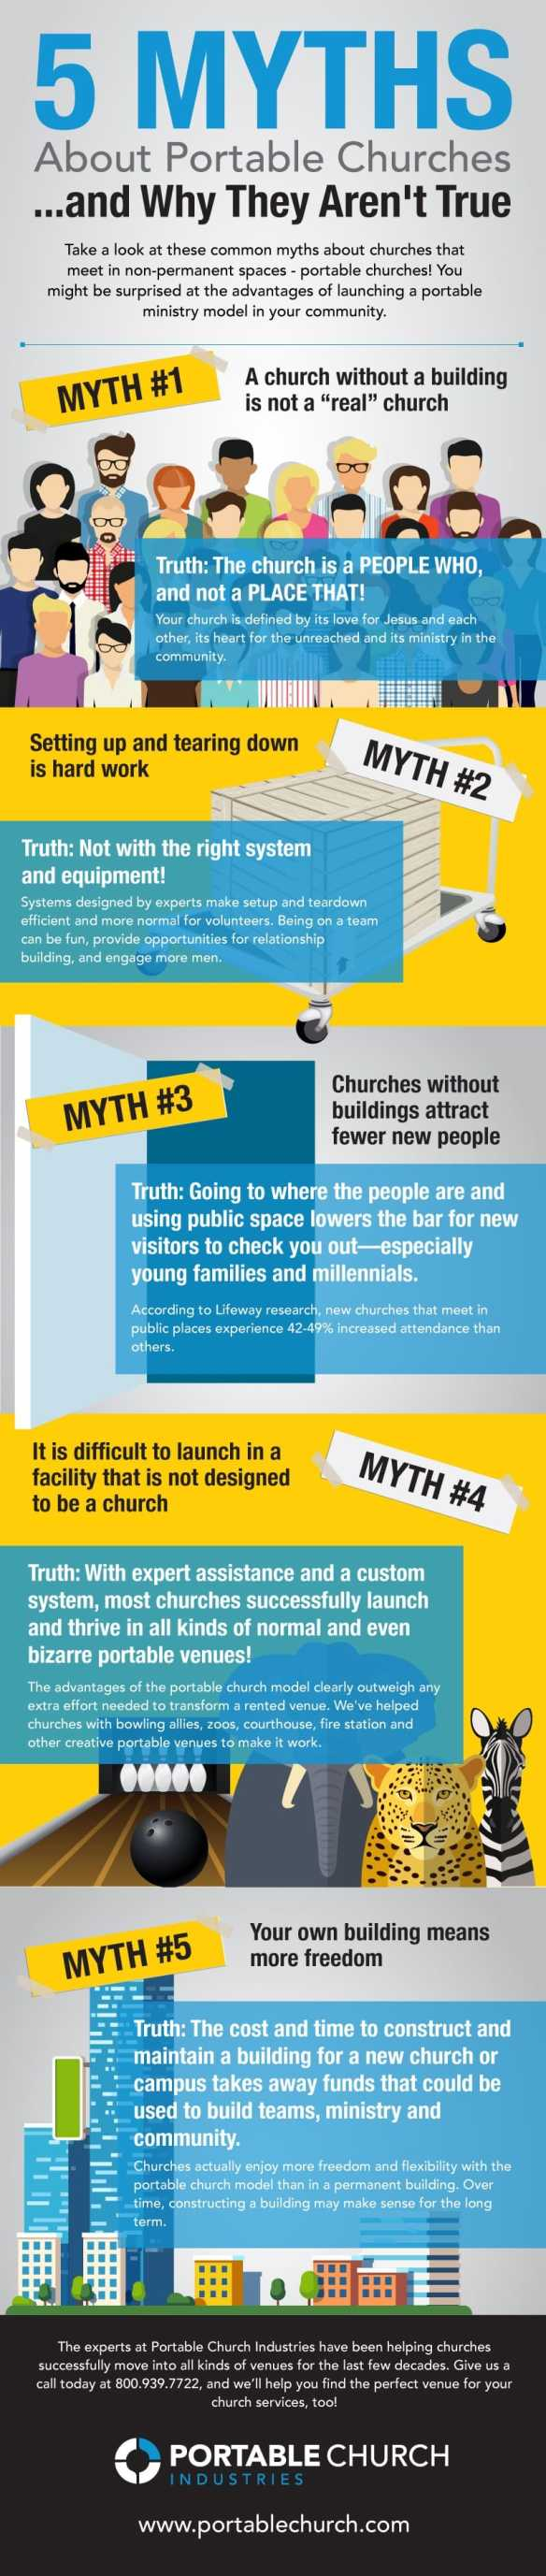 pci-infographic-5mythsaboutportablechurches